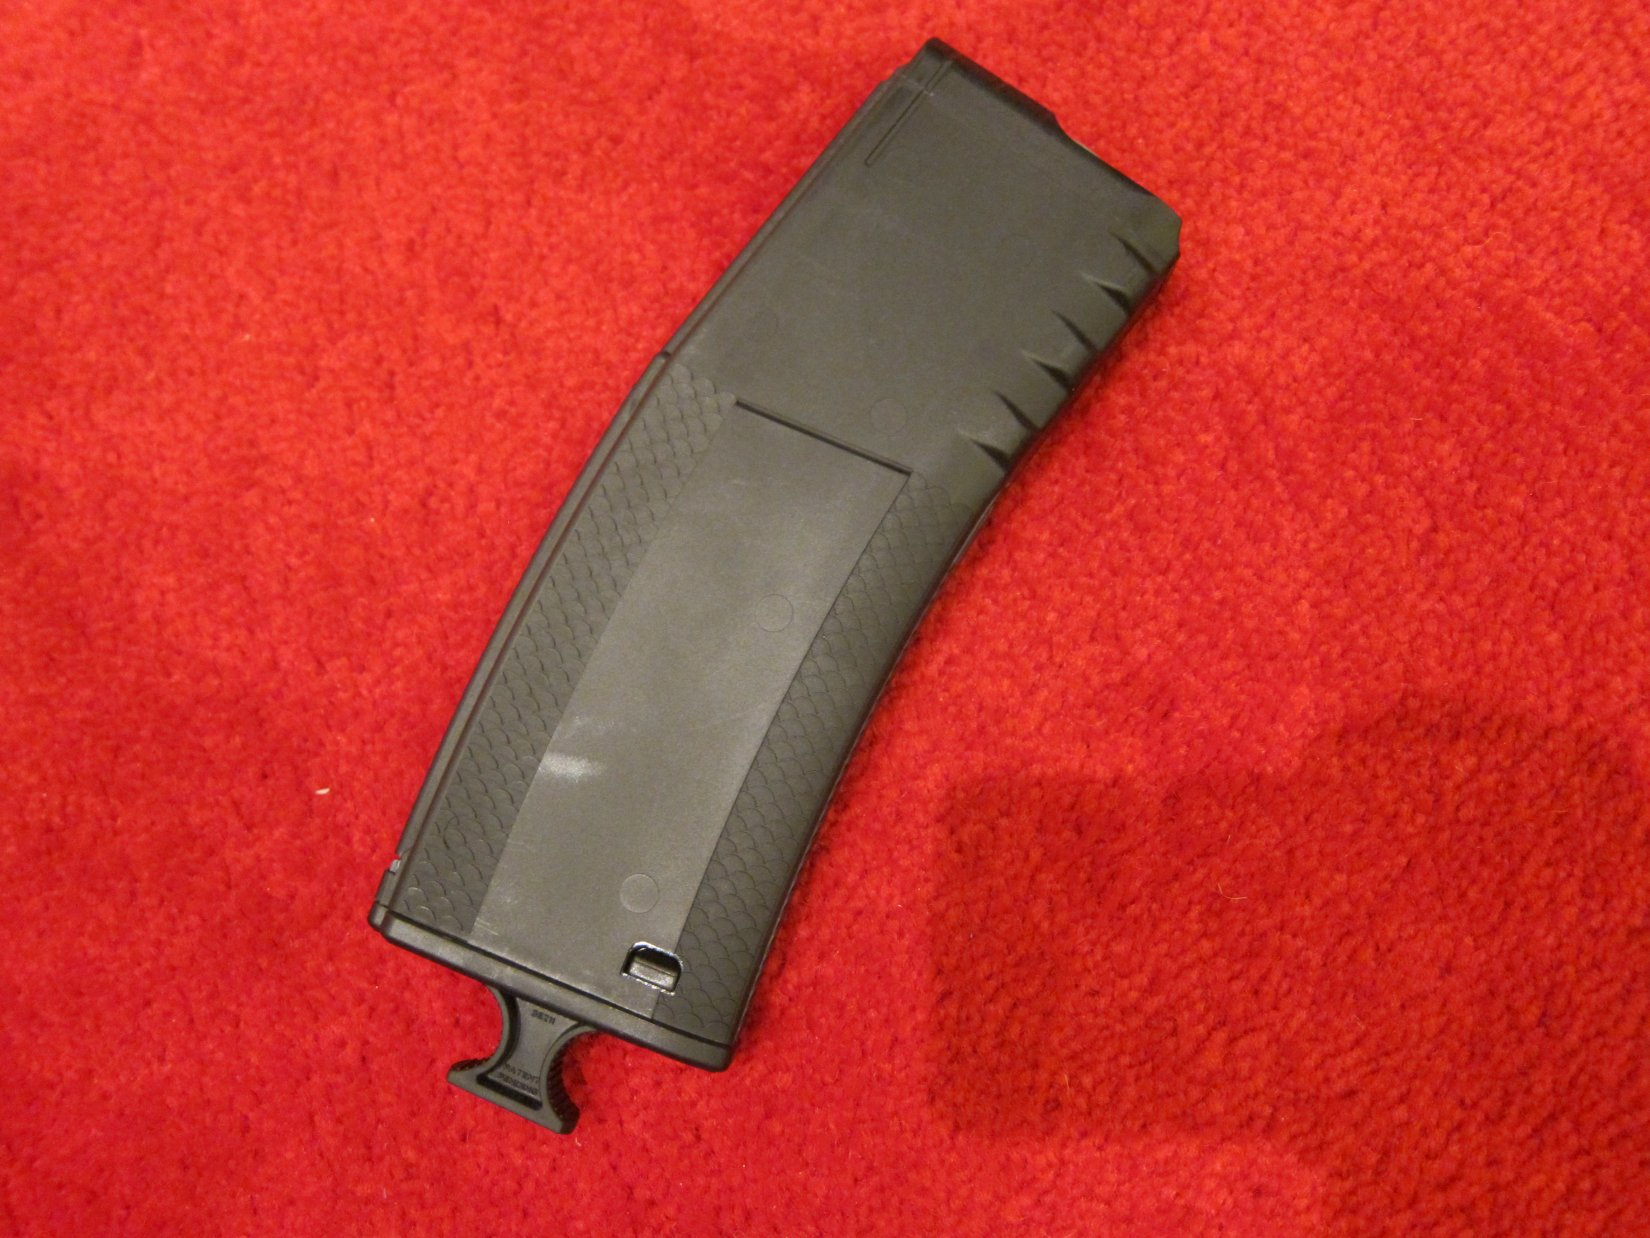 Troy Industries BattleMag 30 Round Polymer AR Rifle Magazine 5.56mm .223 Rem. SHOT Show 2012 DefenseReview.com DR 2 Troy BattleMag 30 Round 5.56mm NATO/.223 Rem. Lightweight Polymer Rifle Magazine for Tactical AR 15 Rifle/Carbine/SBR/Sub Carbines (Video!)